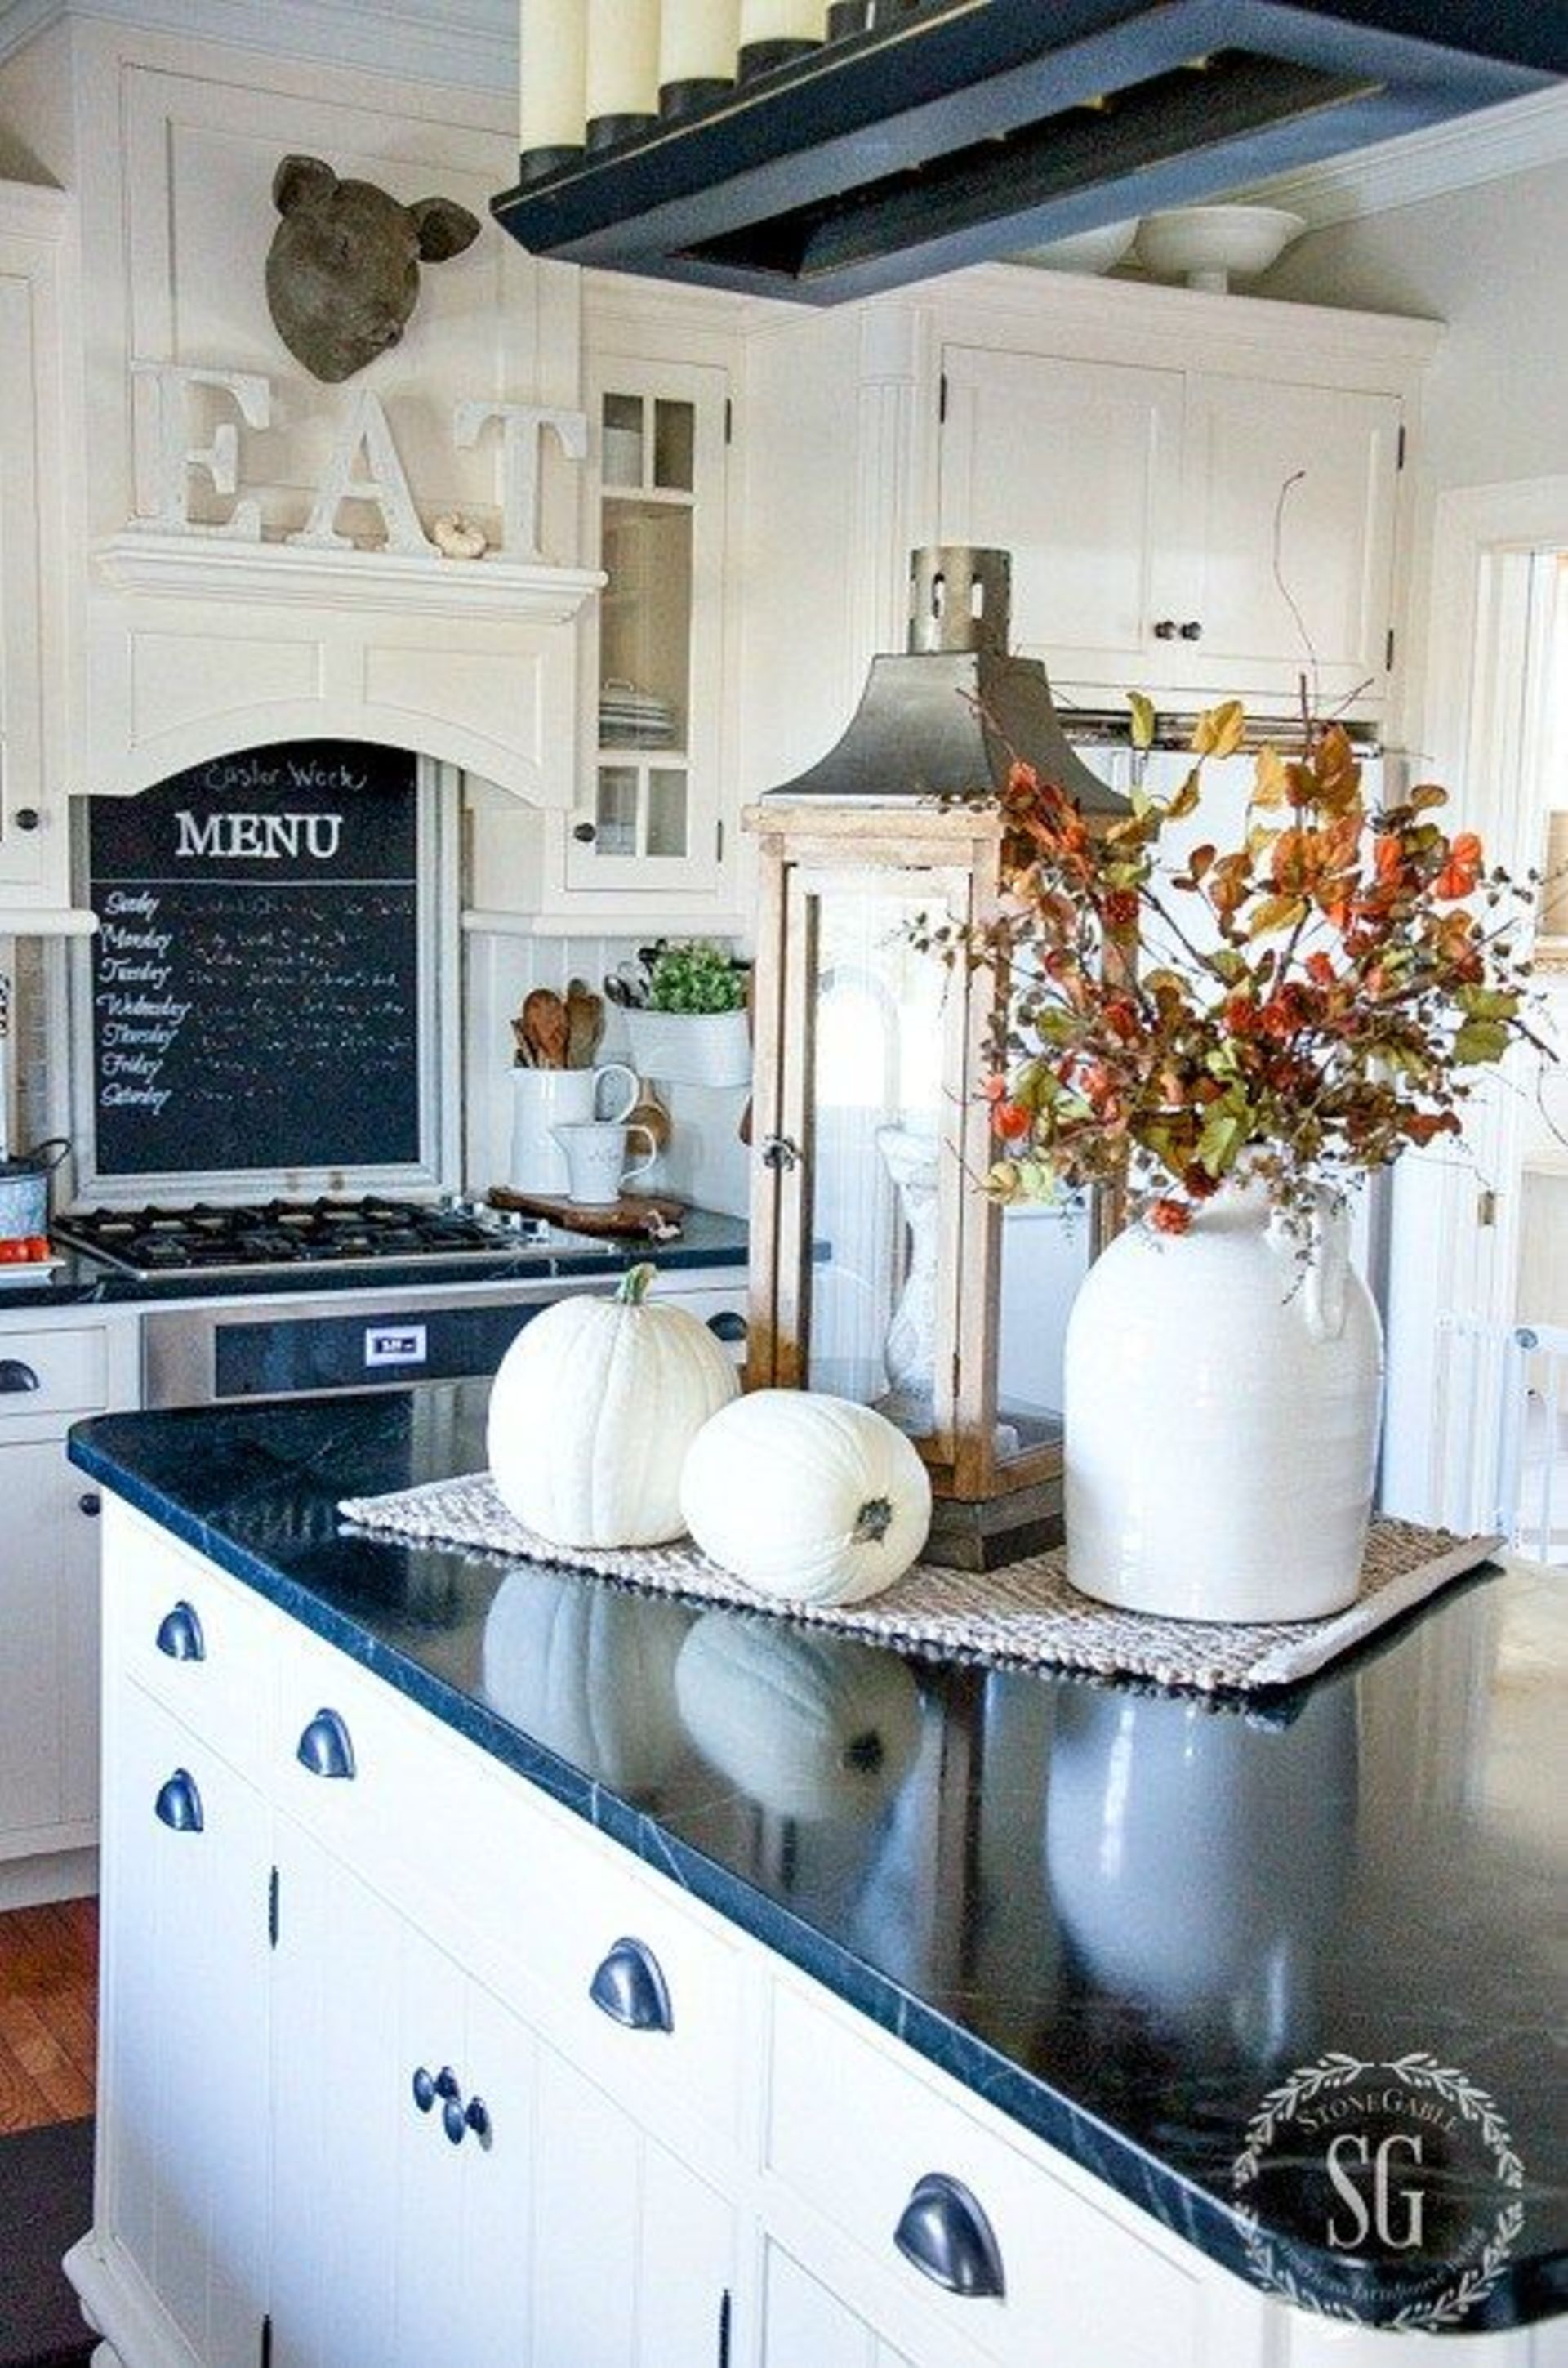 Remodeling Your Kitchen This Fall? Avoid these 5 Mistakes!